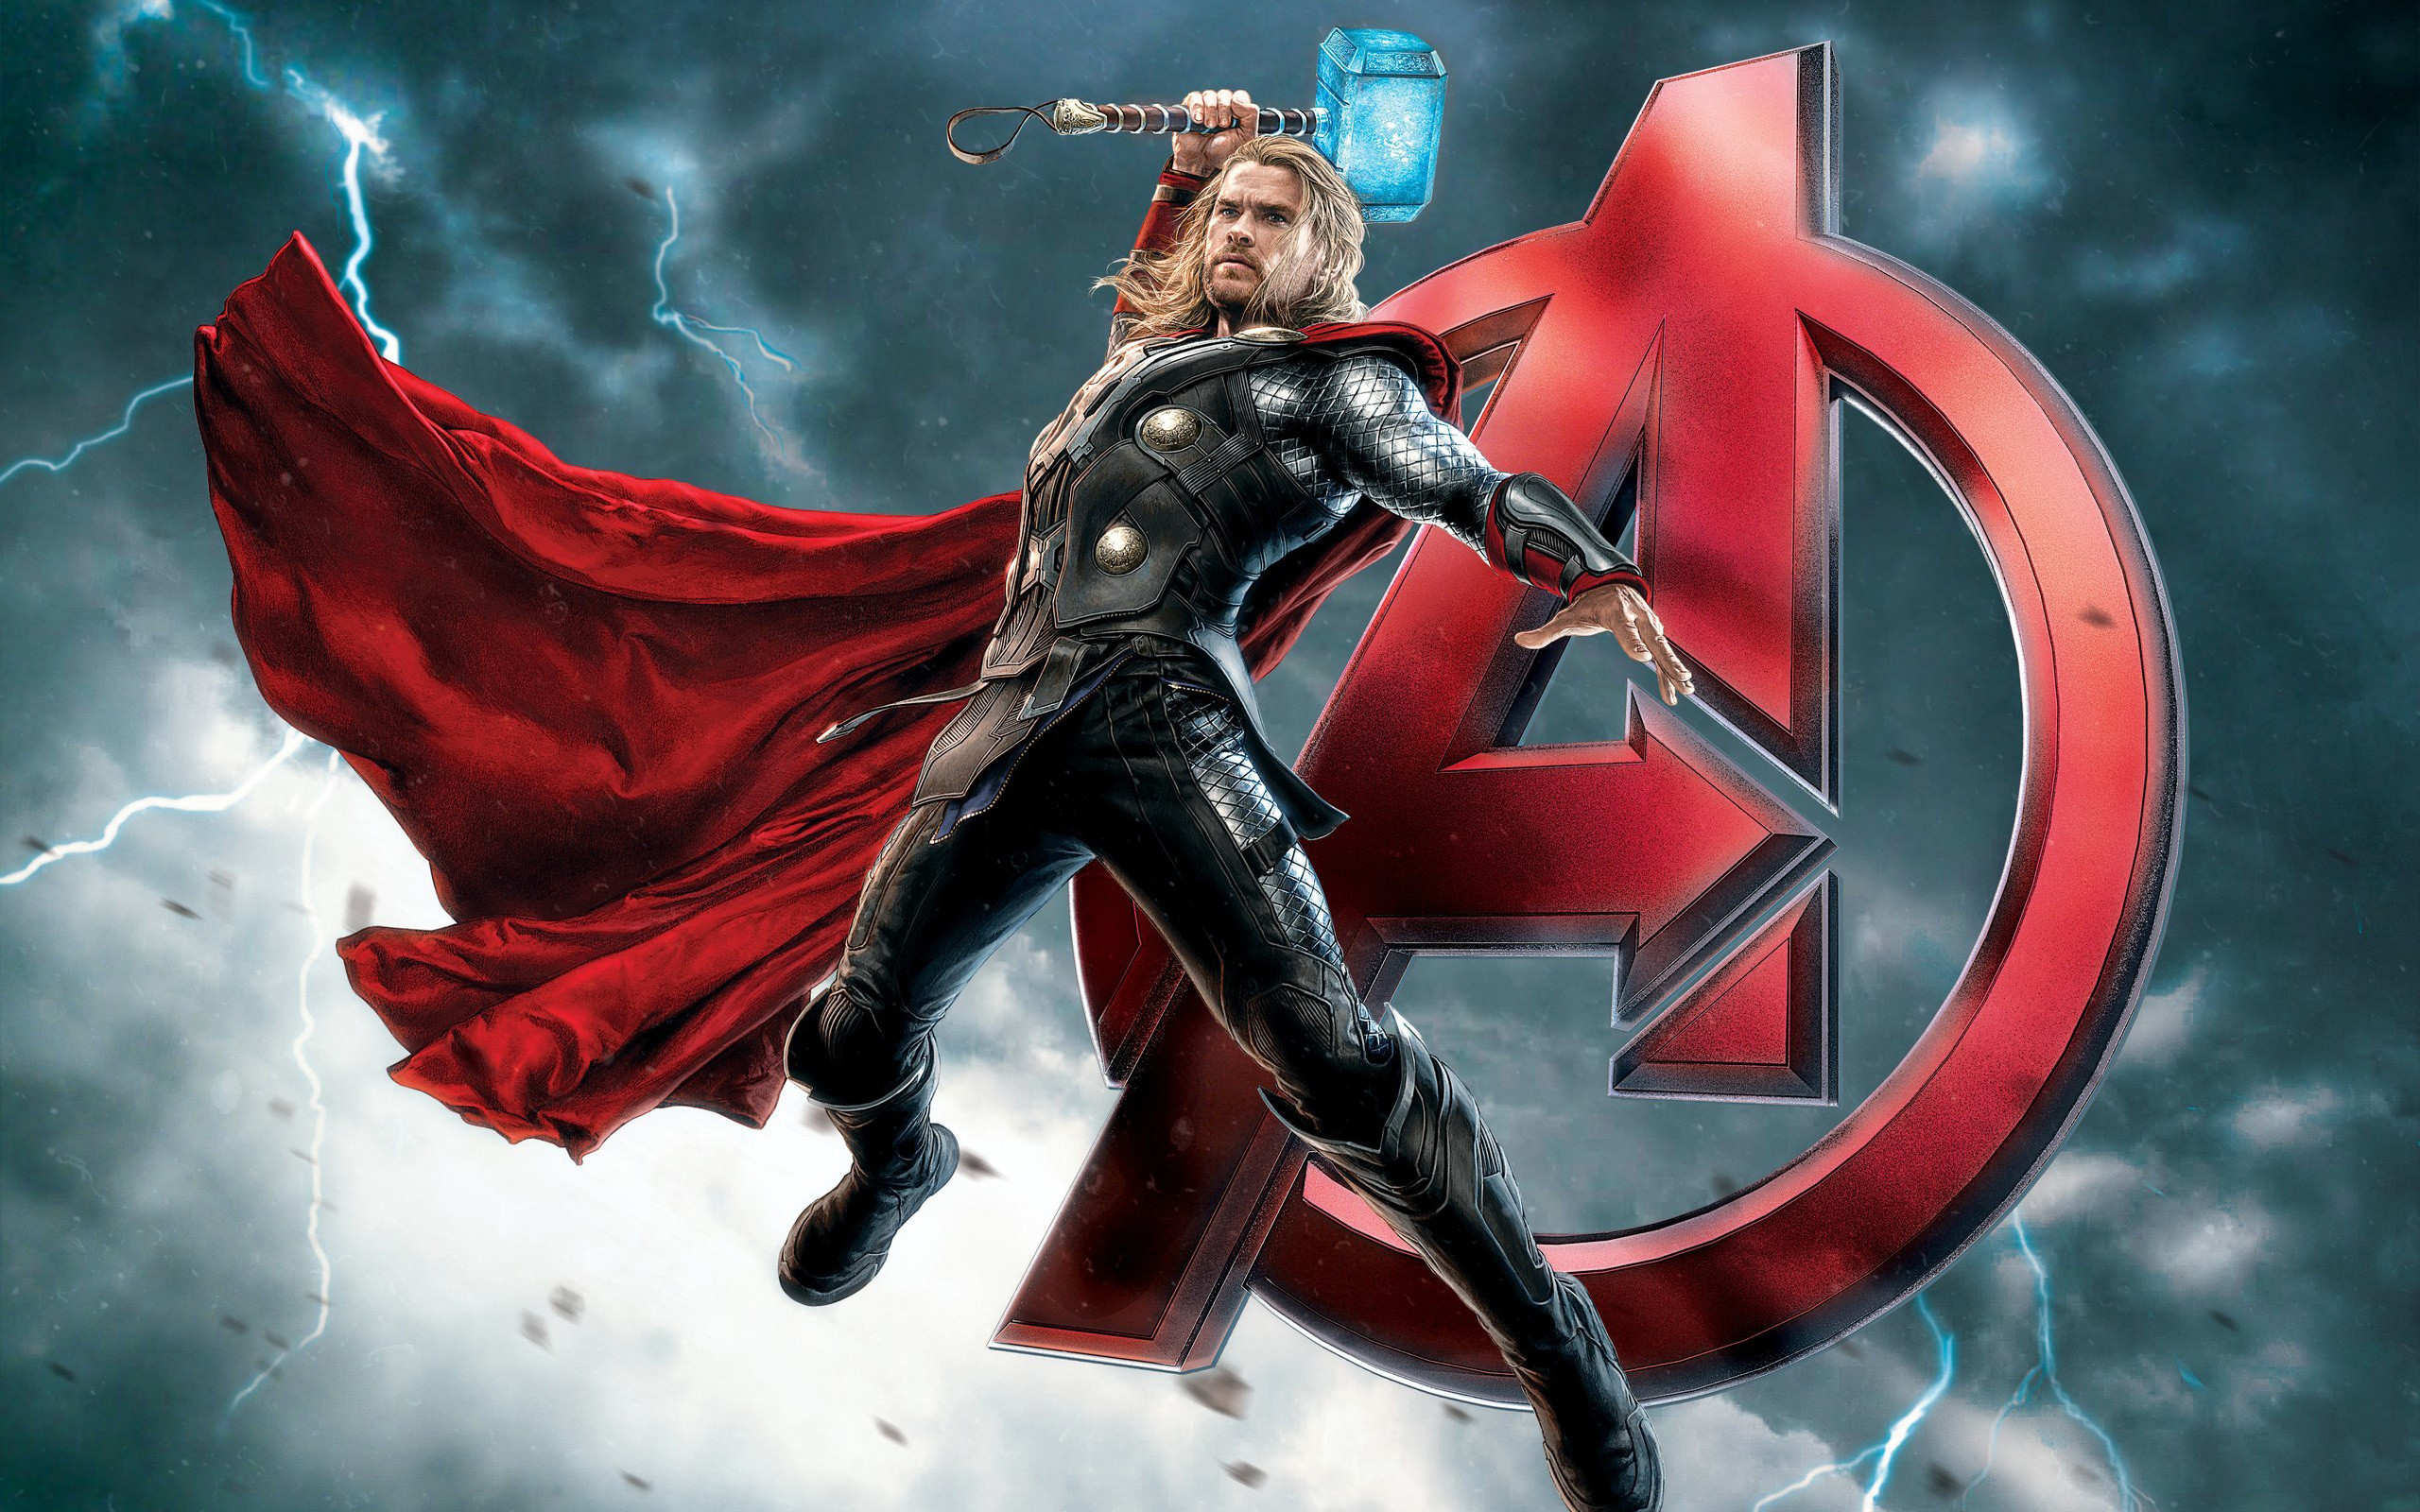 Res: 2560x1600, The Avengers Thor